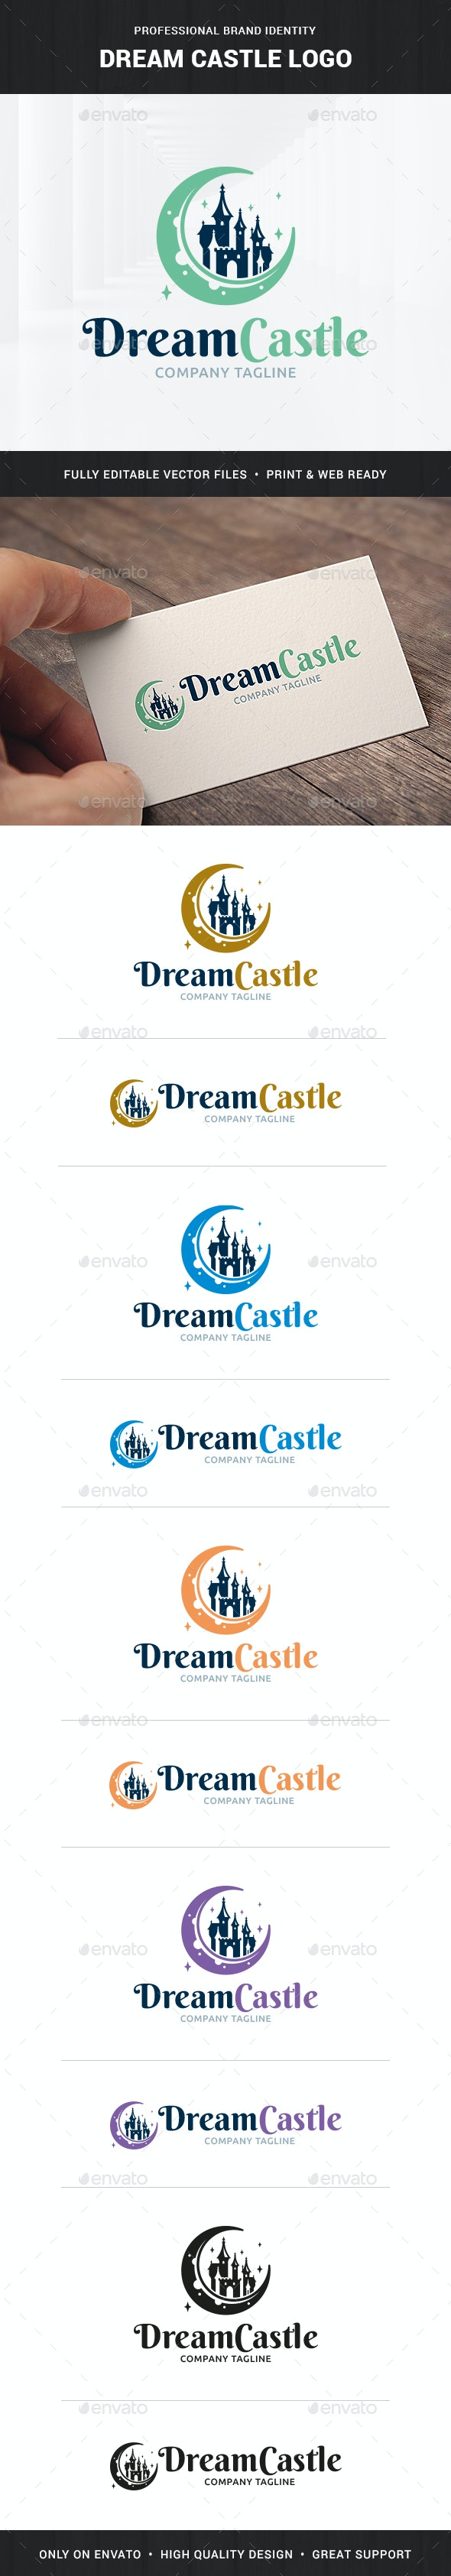 Dream Castle Logo Template - Buildings Logo Templates